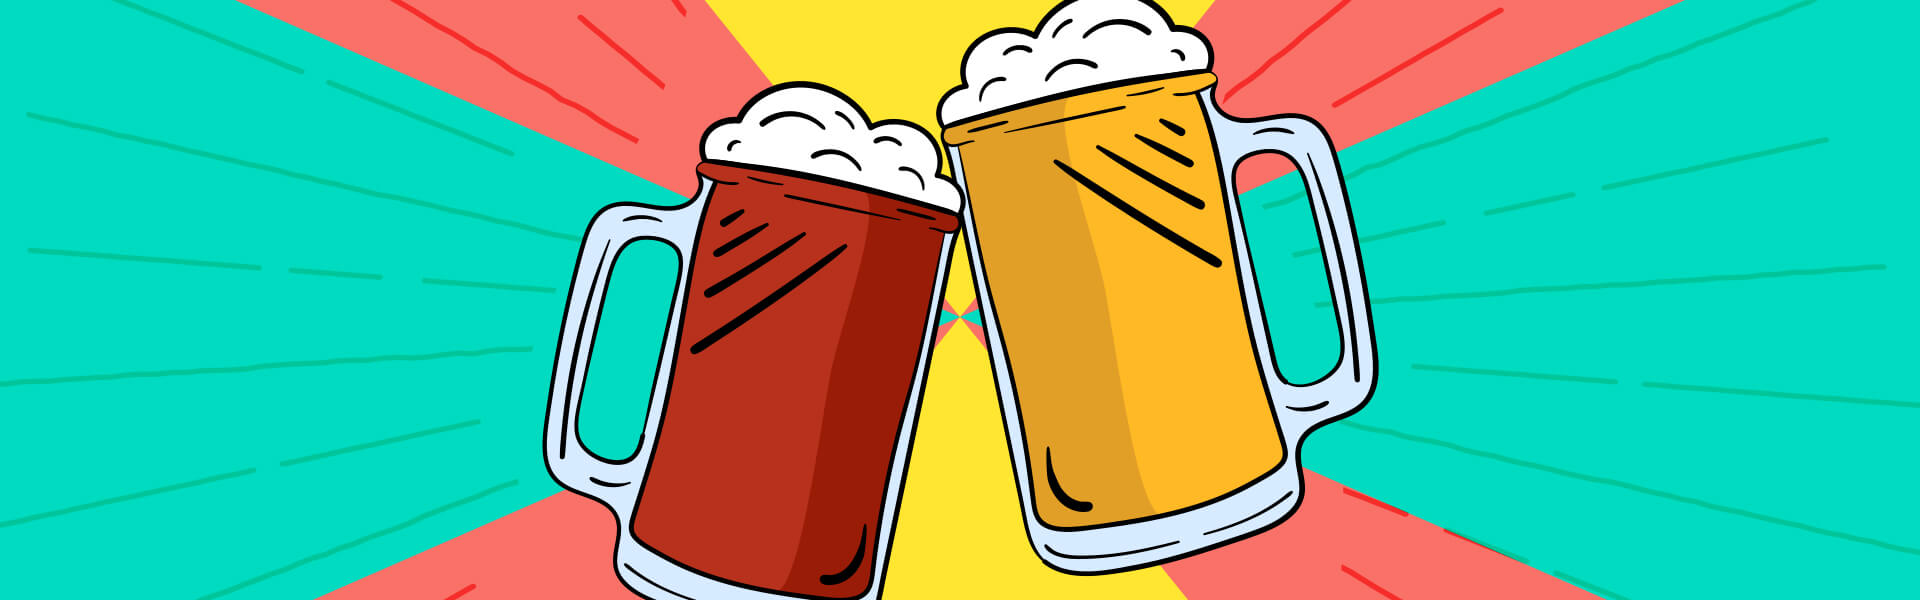 Food & Hospitality blog - Beer get Inclusive Marketing right